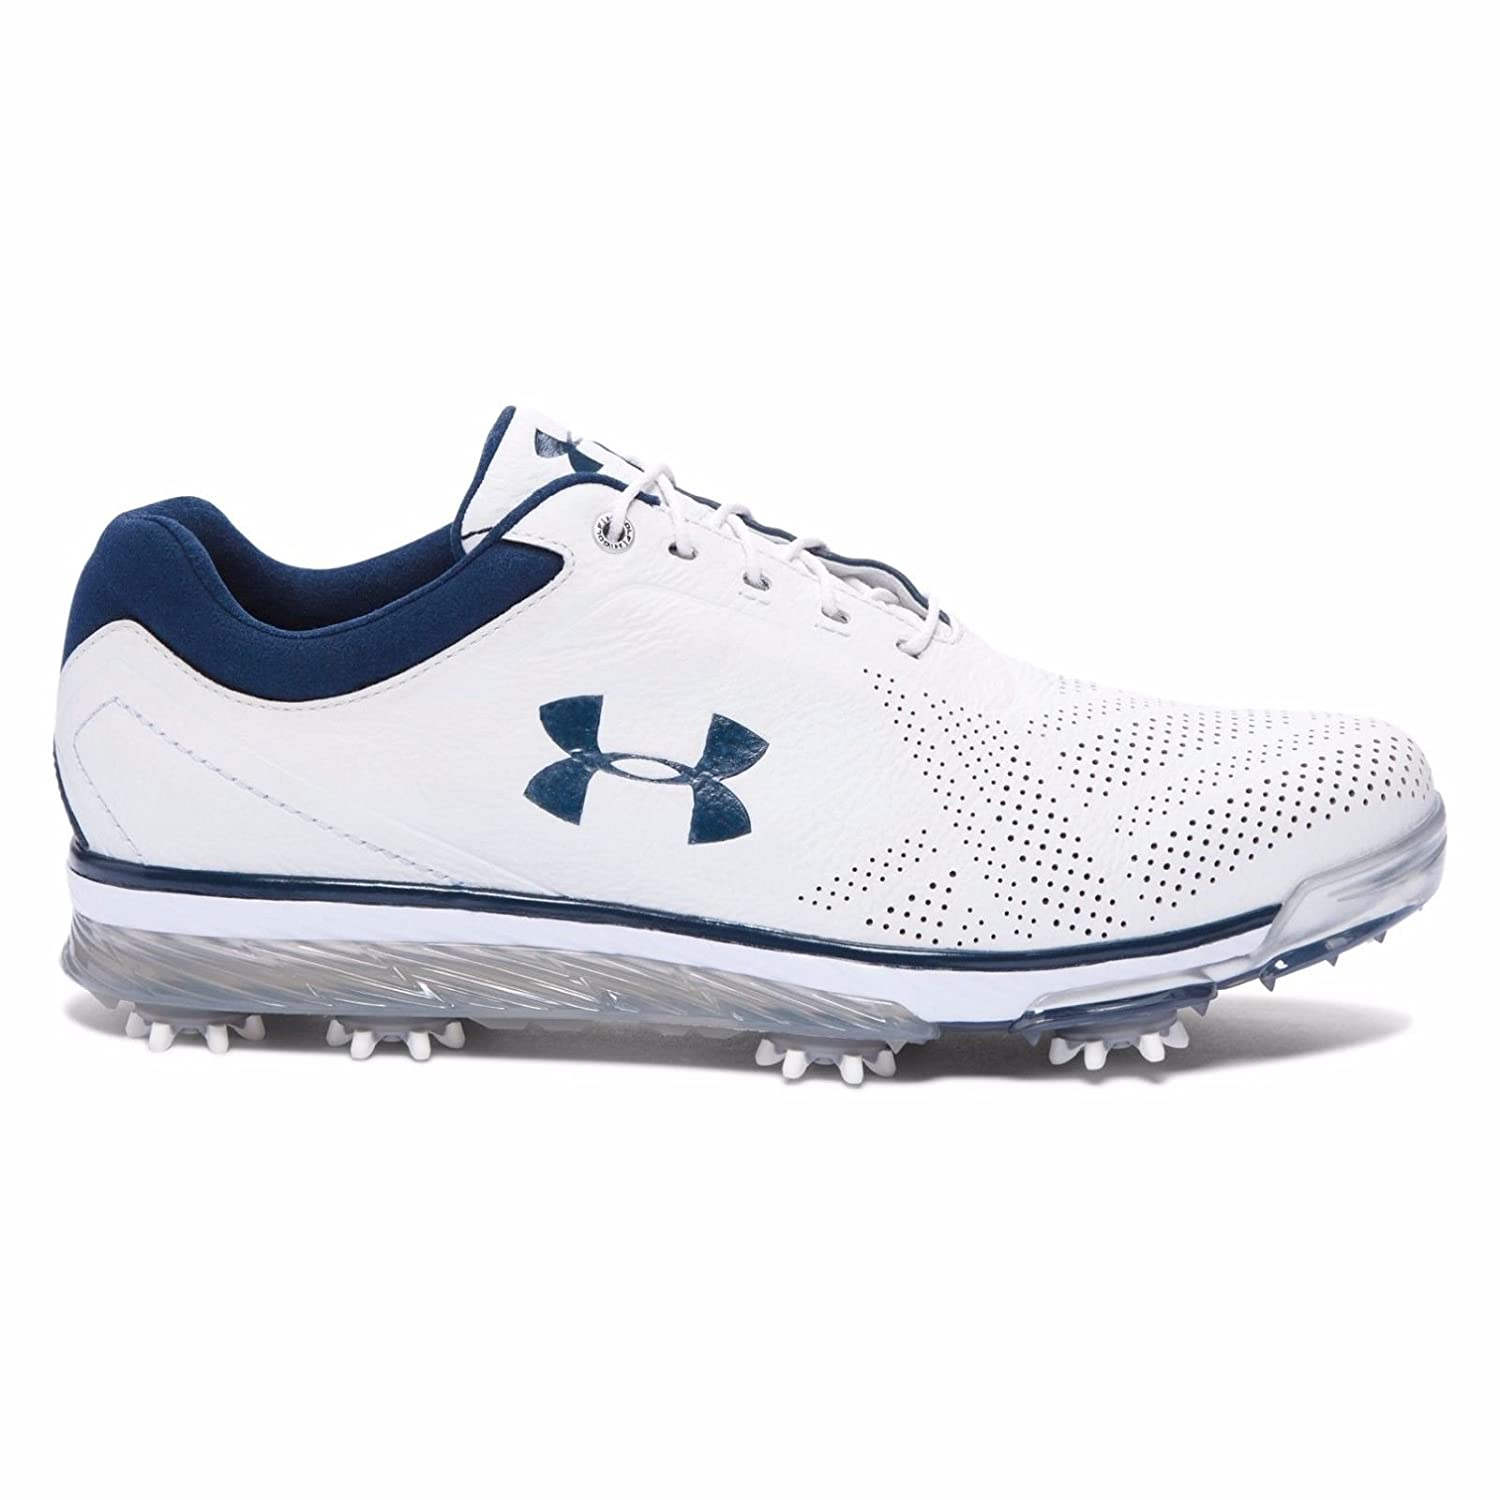 【New Color (5Colors) 】Under Armour Tempo Tour Golf Shoes (アンダーアーマー テンポツアー /ジョーダンスピース ゴルフシューズ)#1270205 (White / Navy, 30cm(US12)) [並行輸入品]   B0728MFHRM